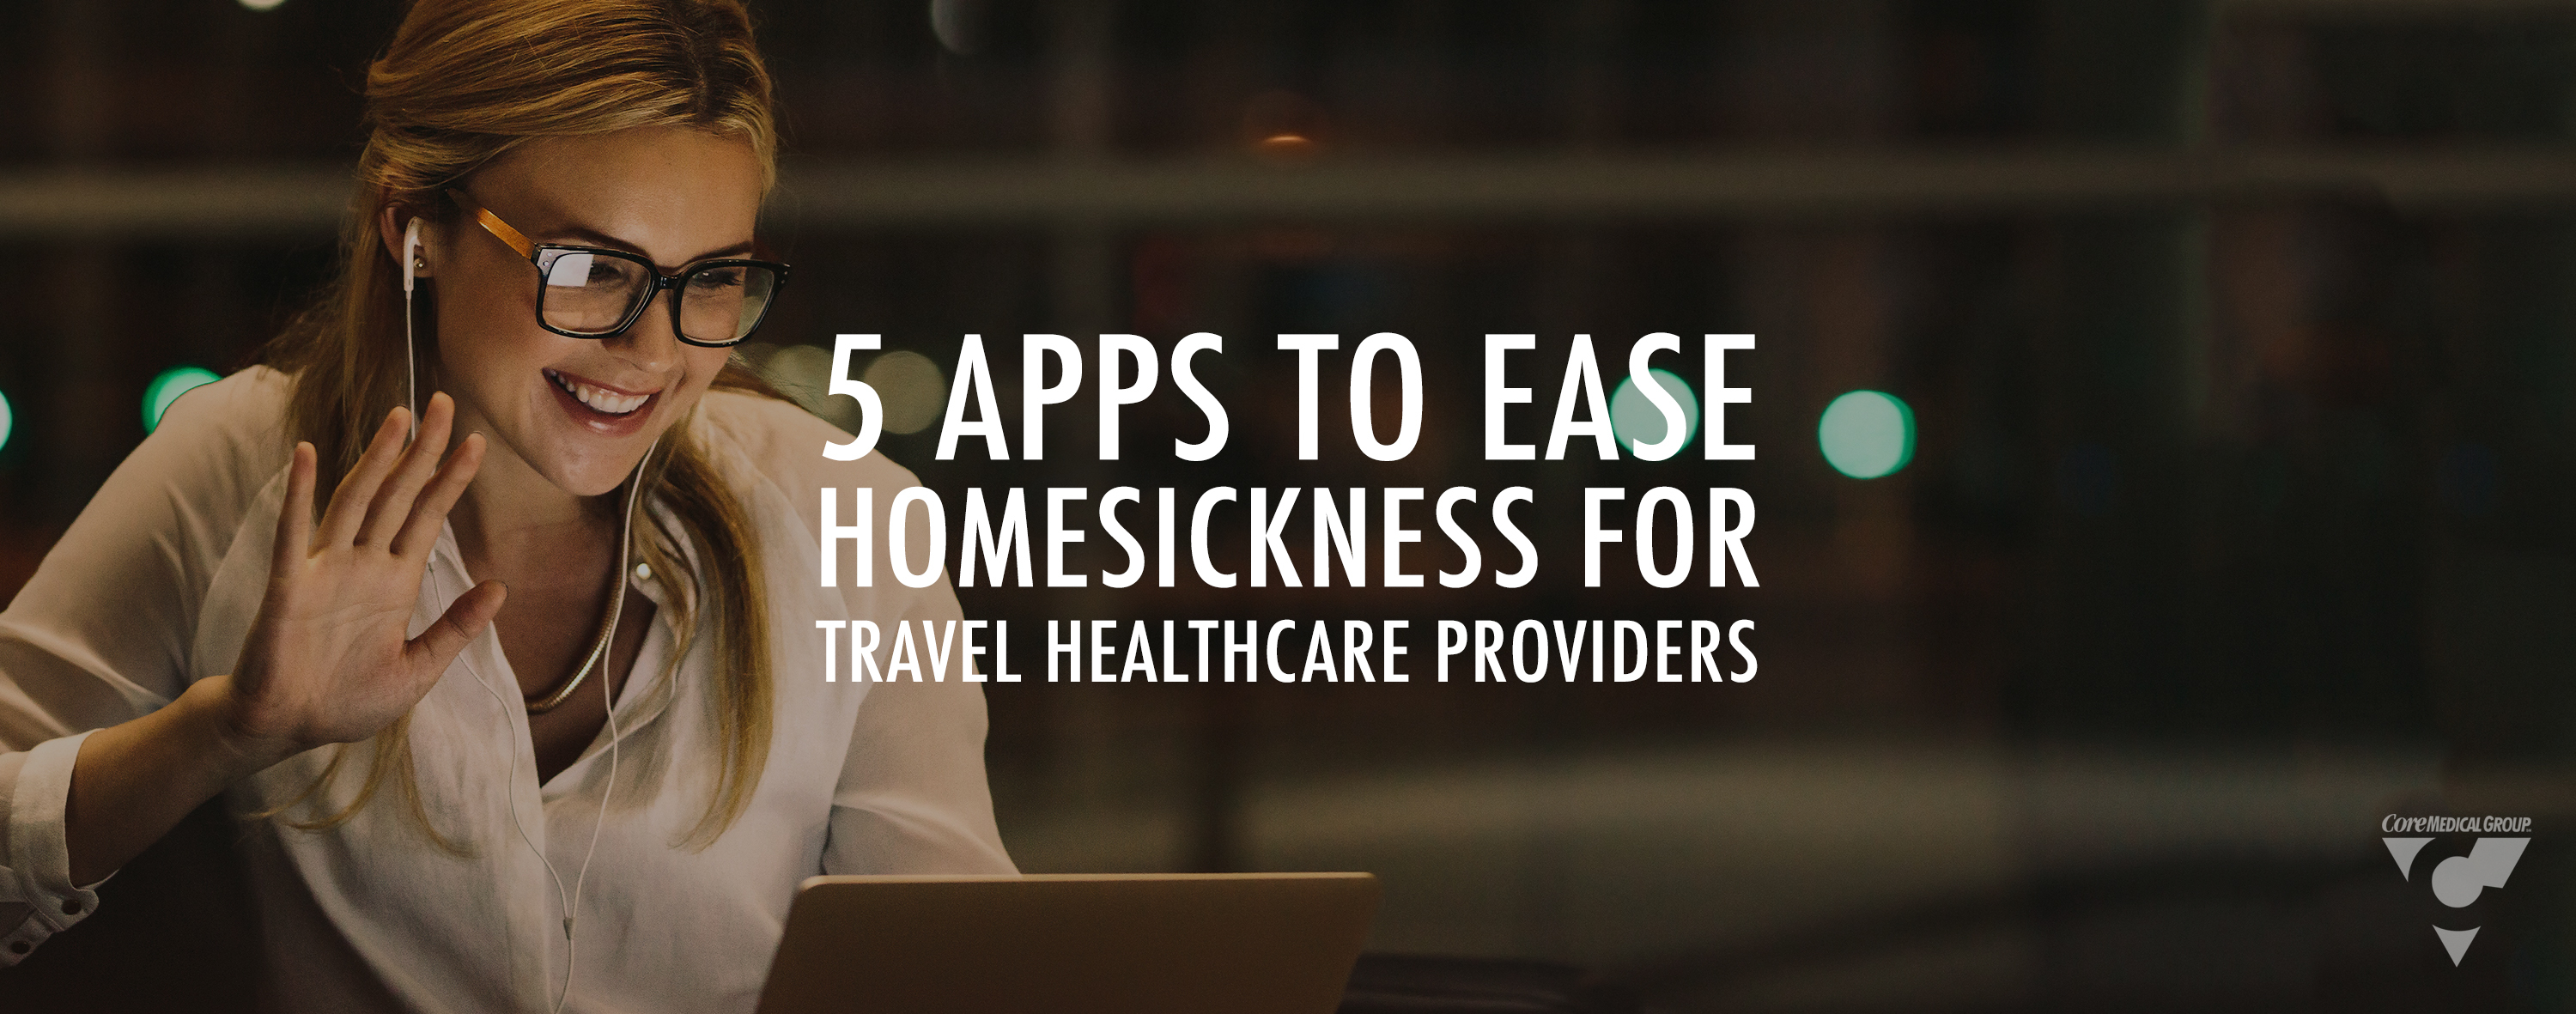 Core Medical Group CMG 5 Apps to eases homesickness for travel healthcare providers